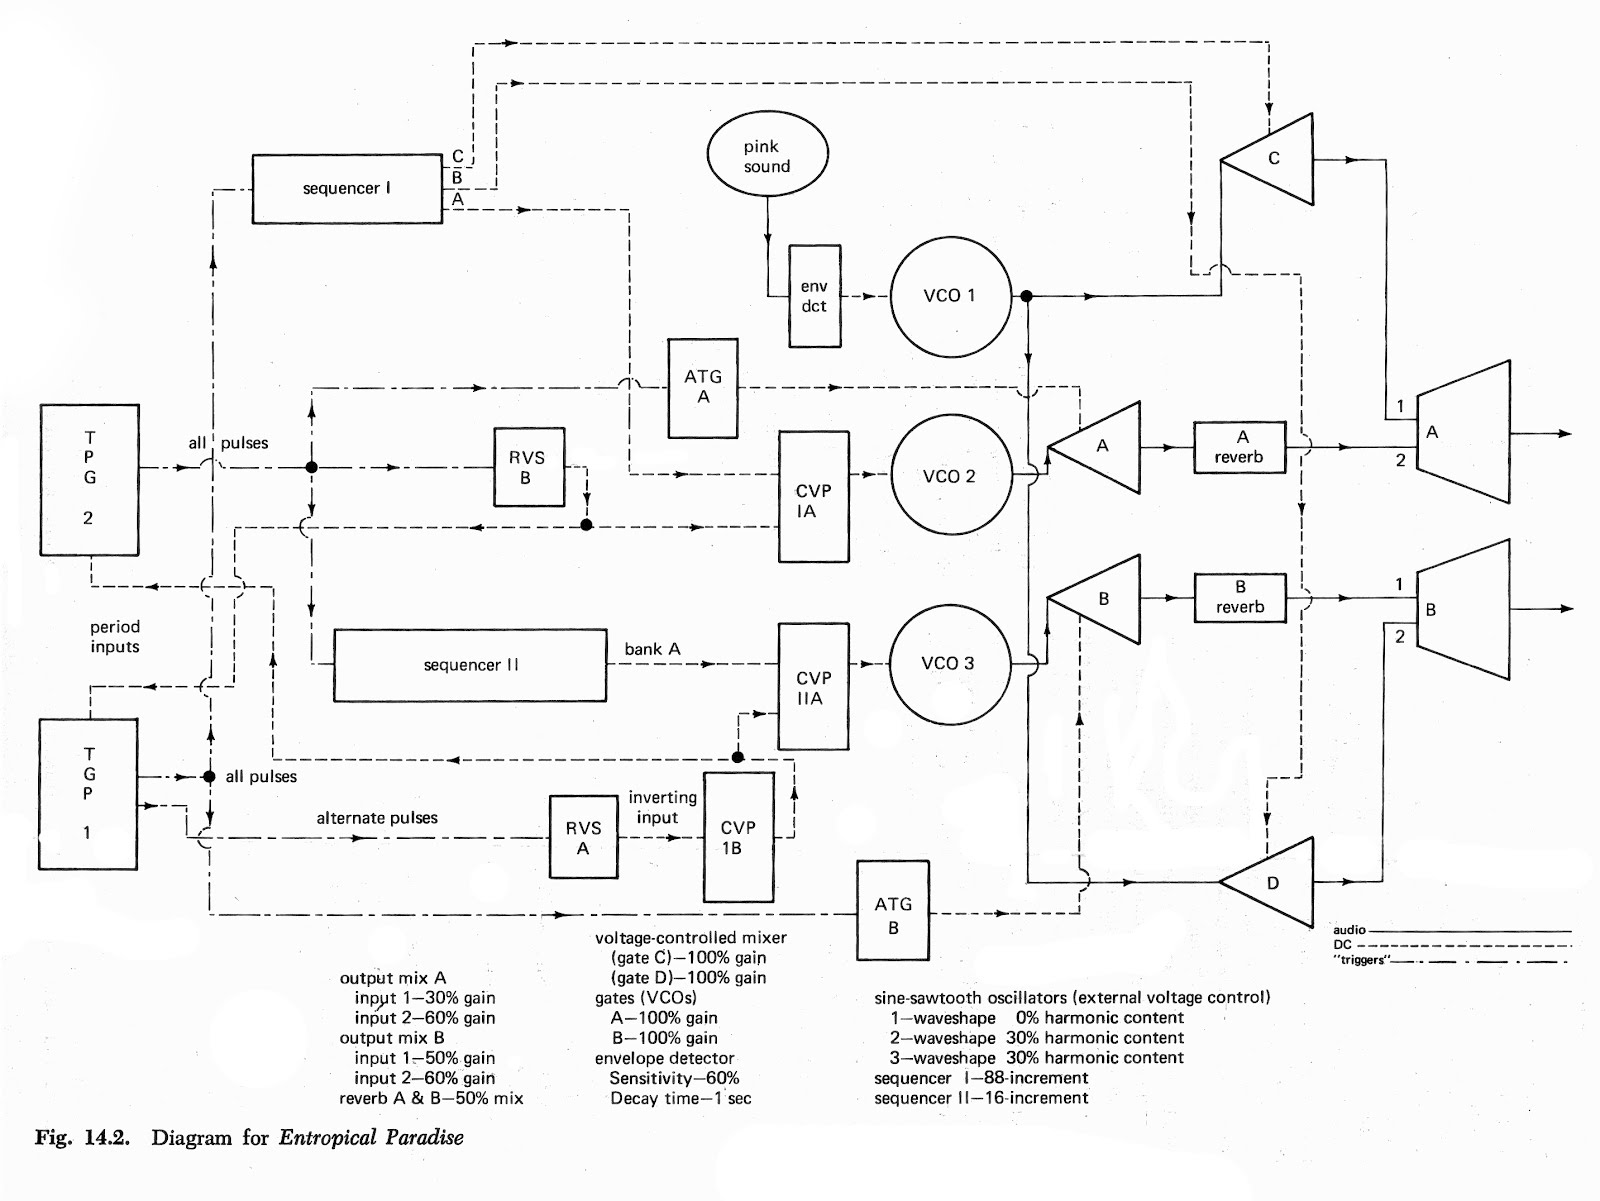 ▷ electrical wiring schematic of 1968 1969 harley davidson sportster wiring schematic nätverk och noder pinterest electrical wiring and harley